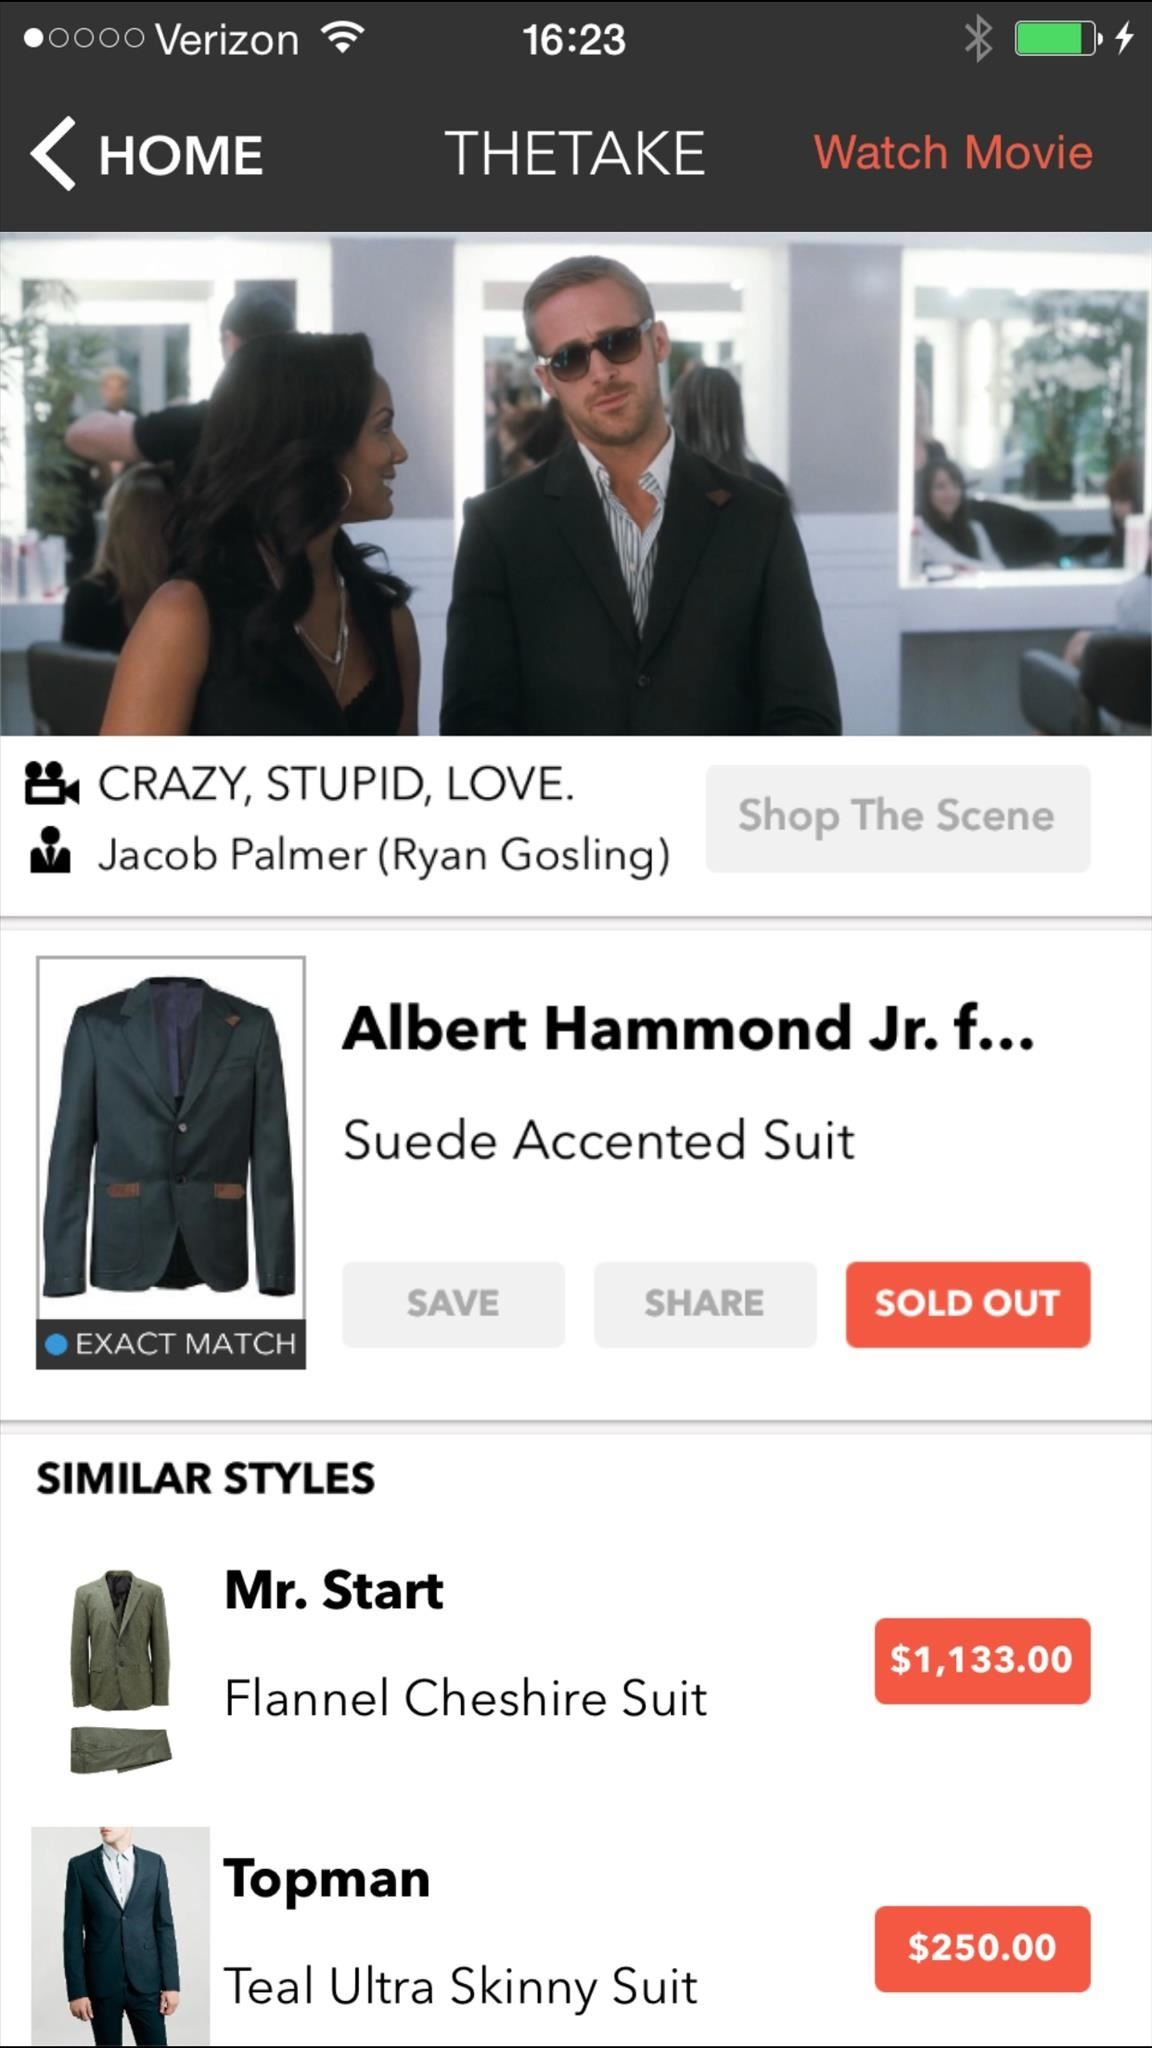 The Easiest Way to Find Clothing & Accessories That Celebs Wear in Movies